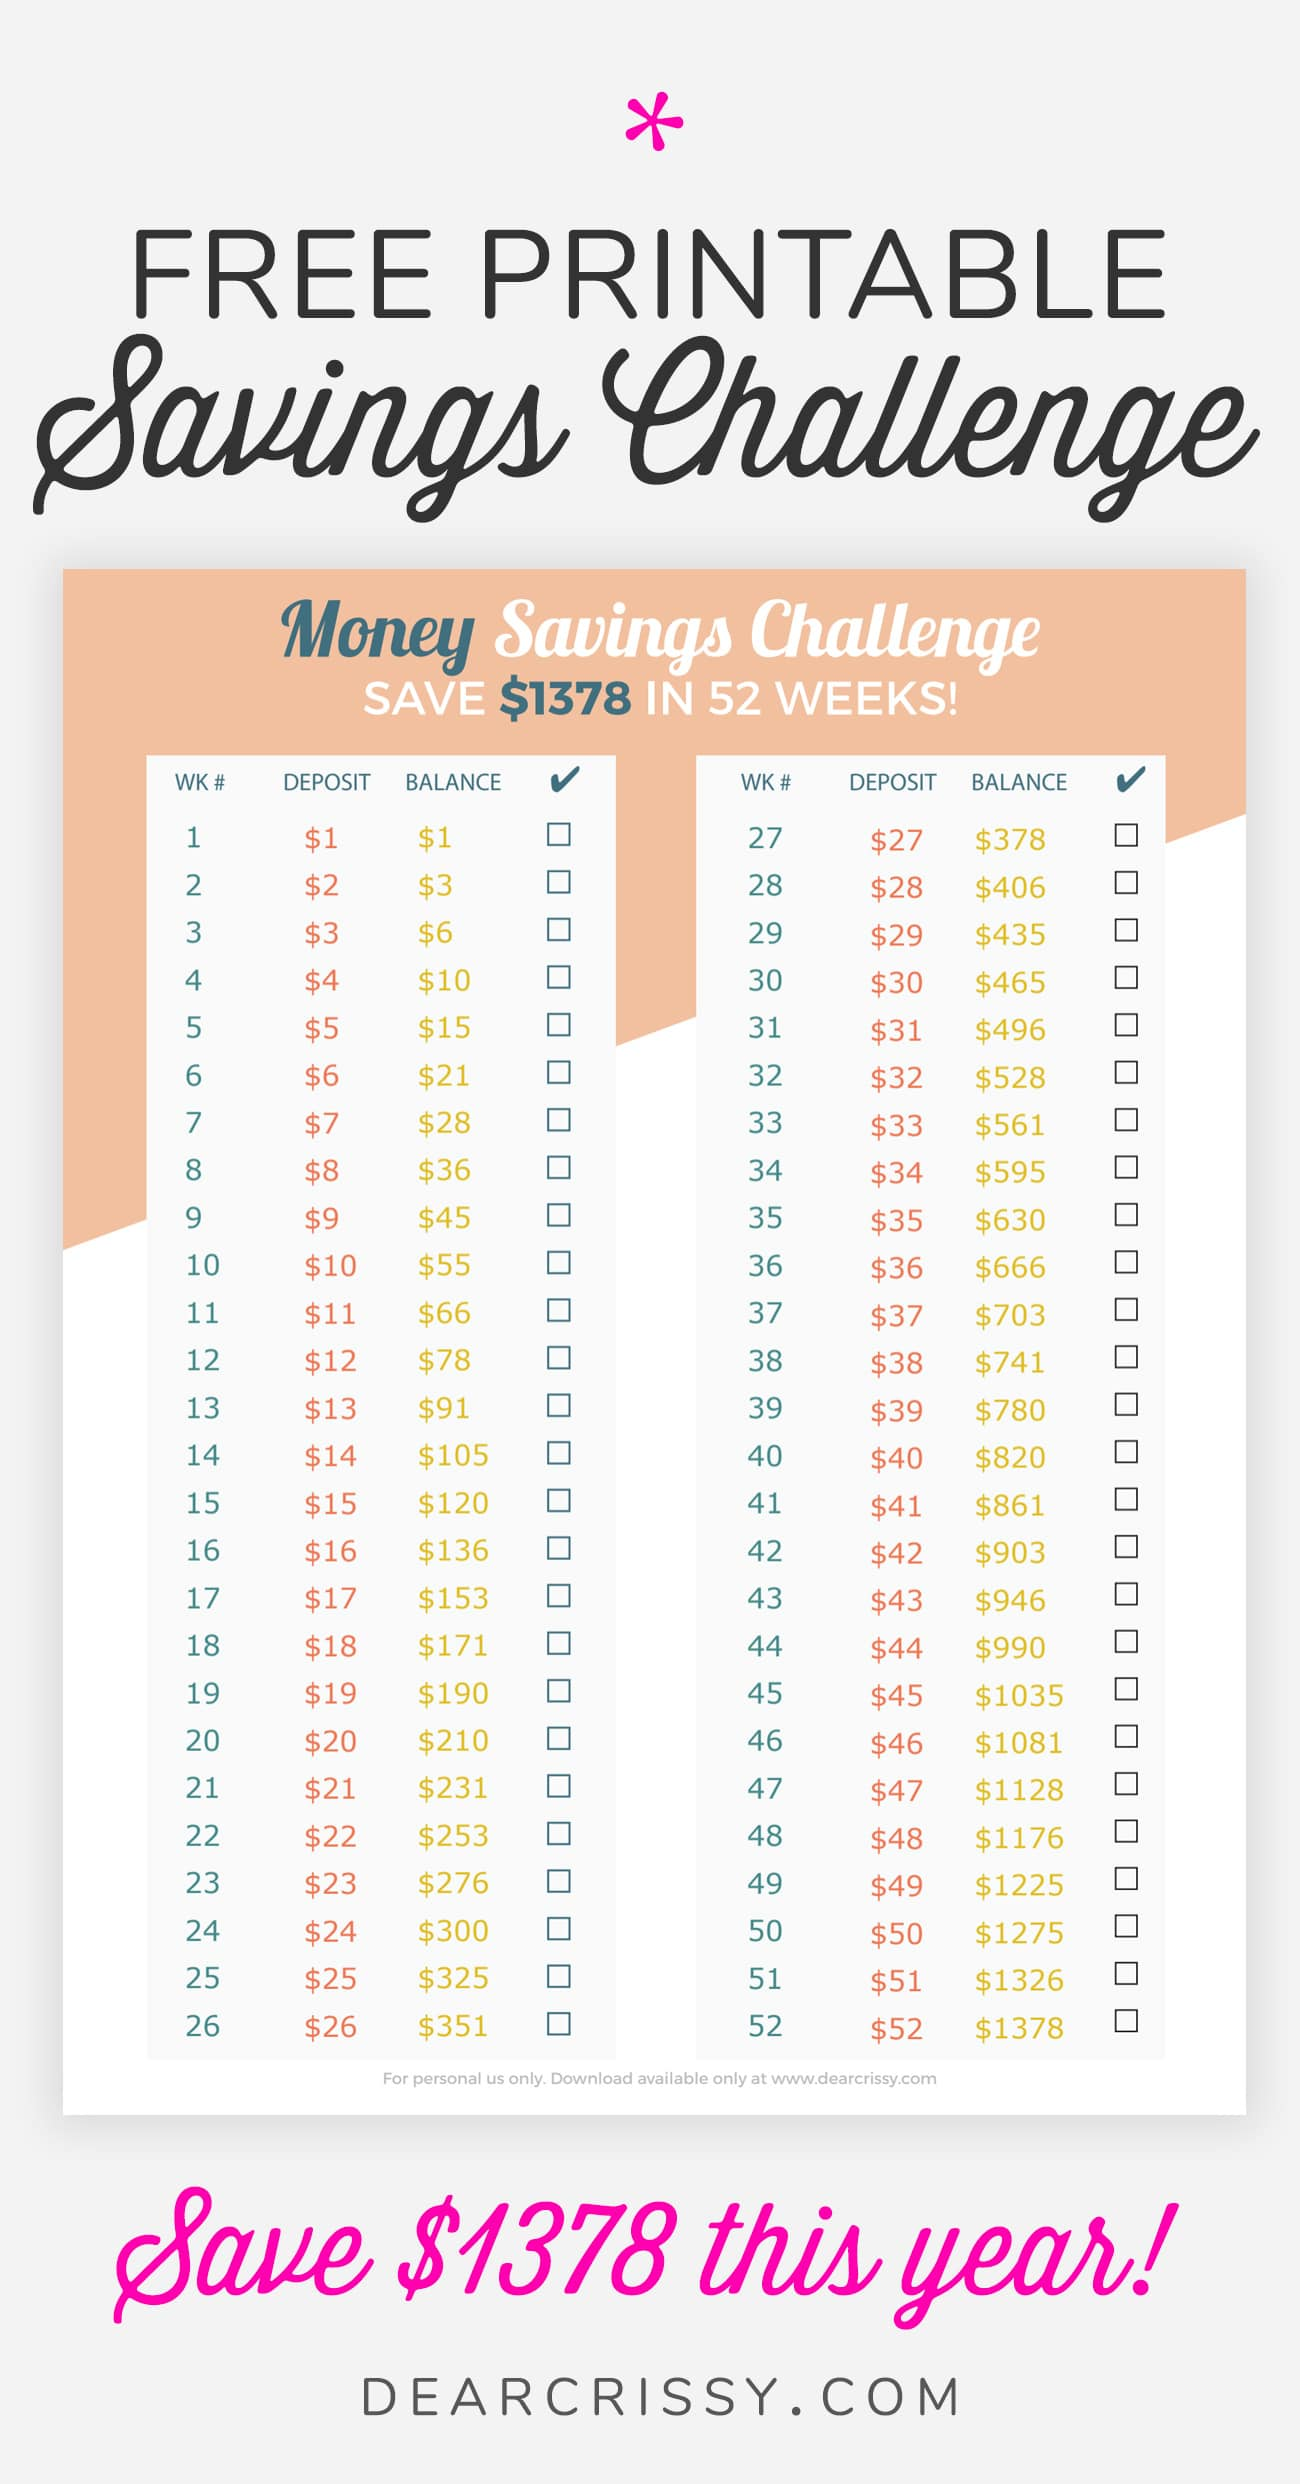 This is an image of Enterprising 52 Week Challenge Printable